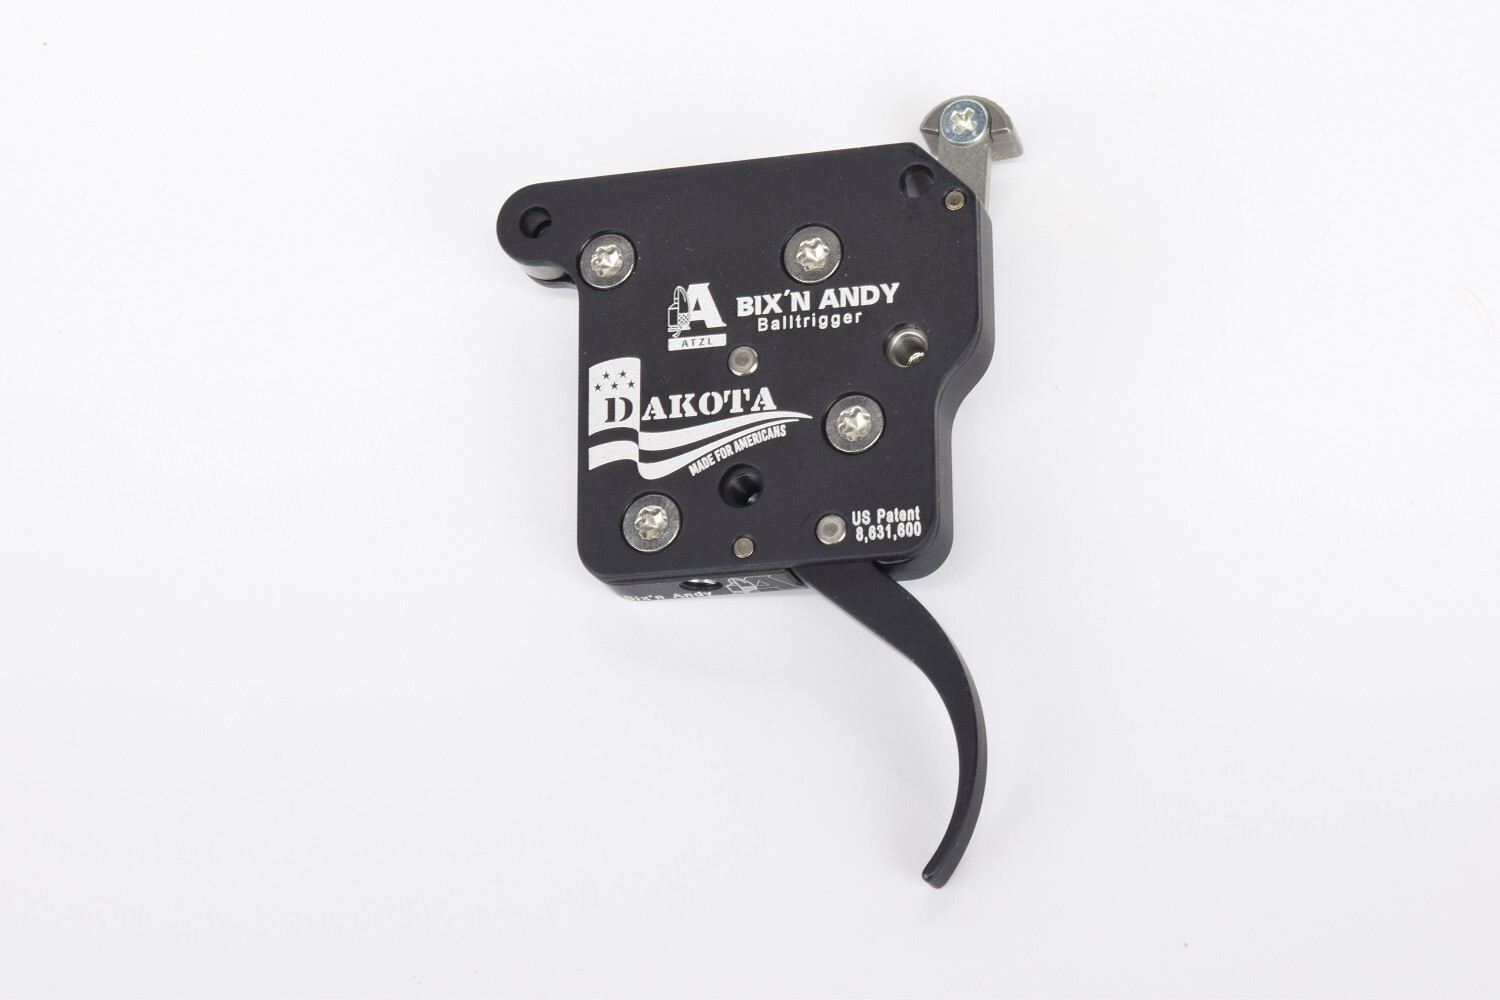 Bix'n Andy Dakota 1lb to 4.5lb Trigger for Remington 700 and Clones